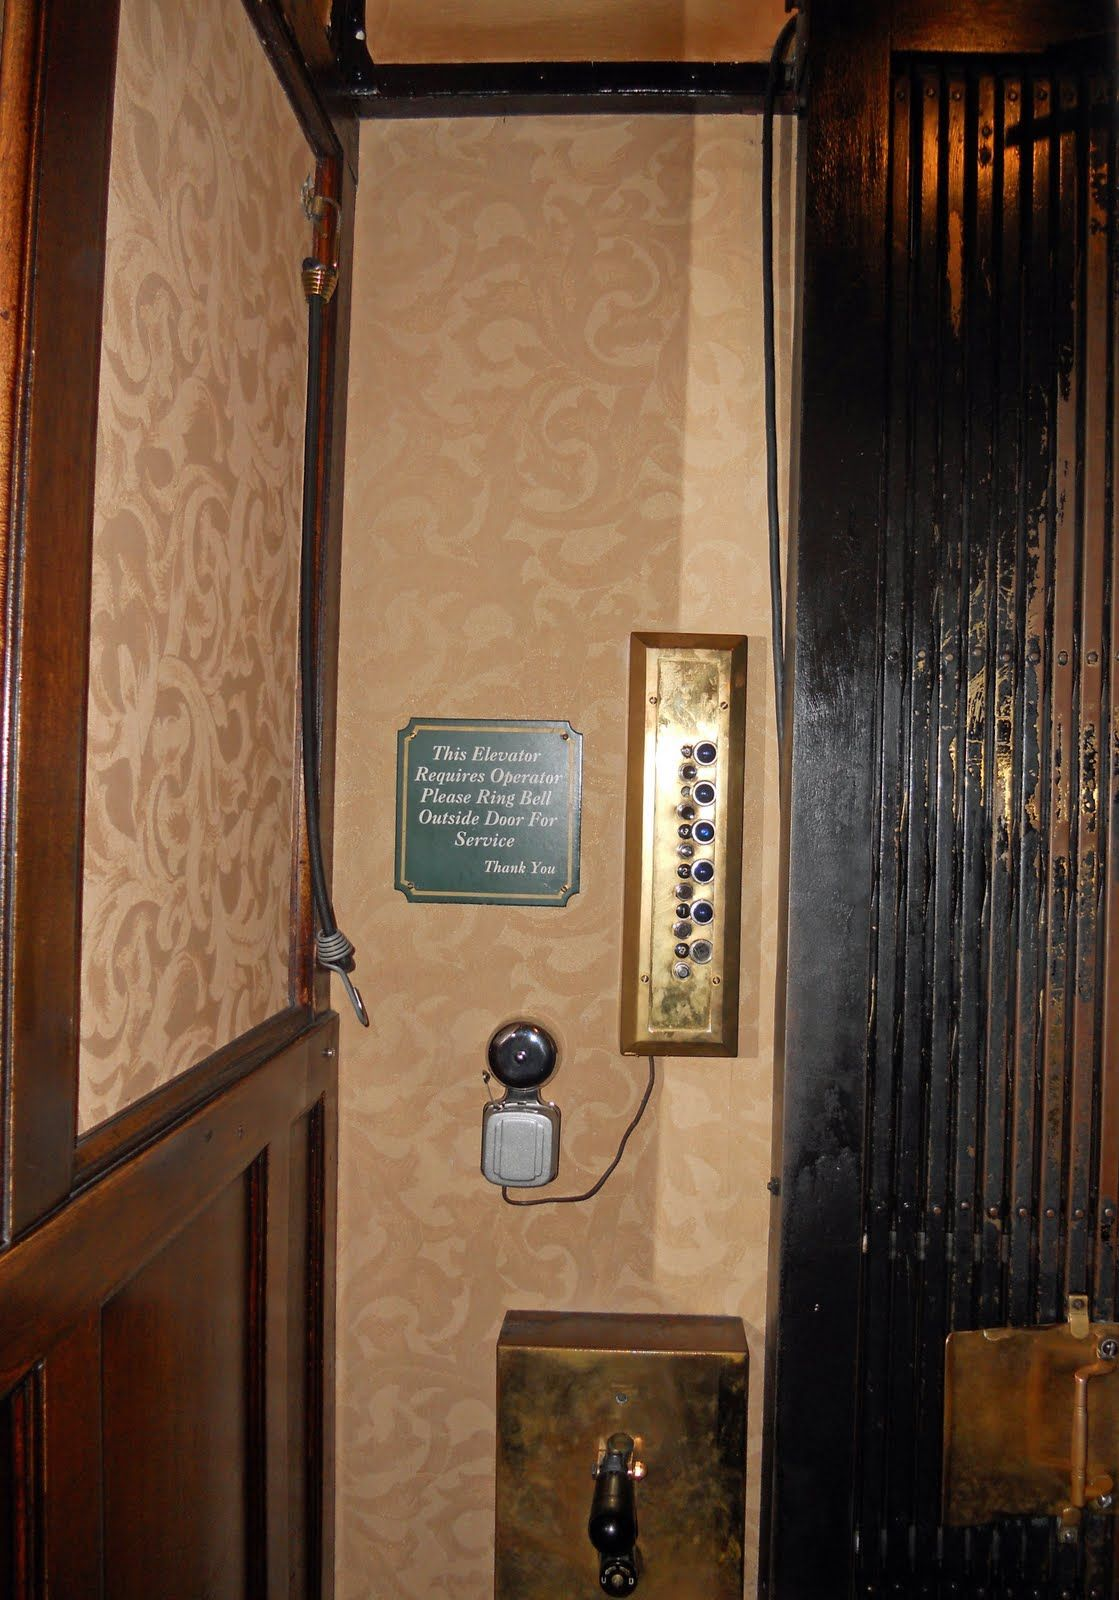 Day 222 ~ Inside Otis. Check out the view of our 1906 Otis elevator from  the inside!